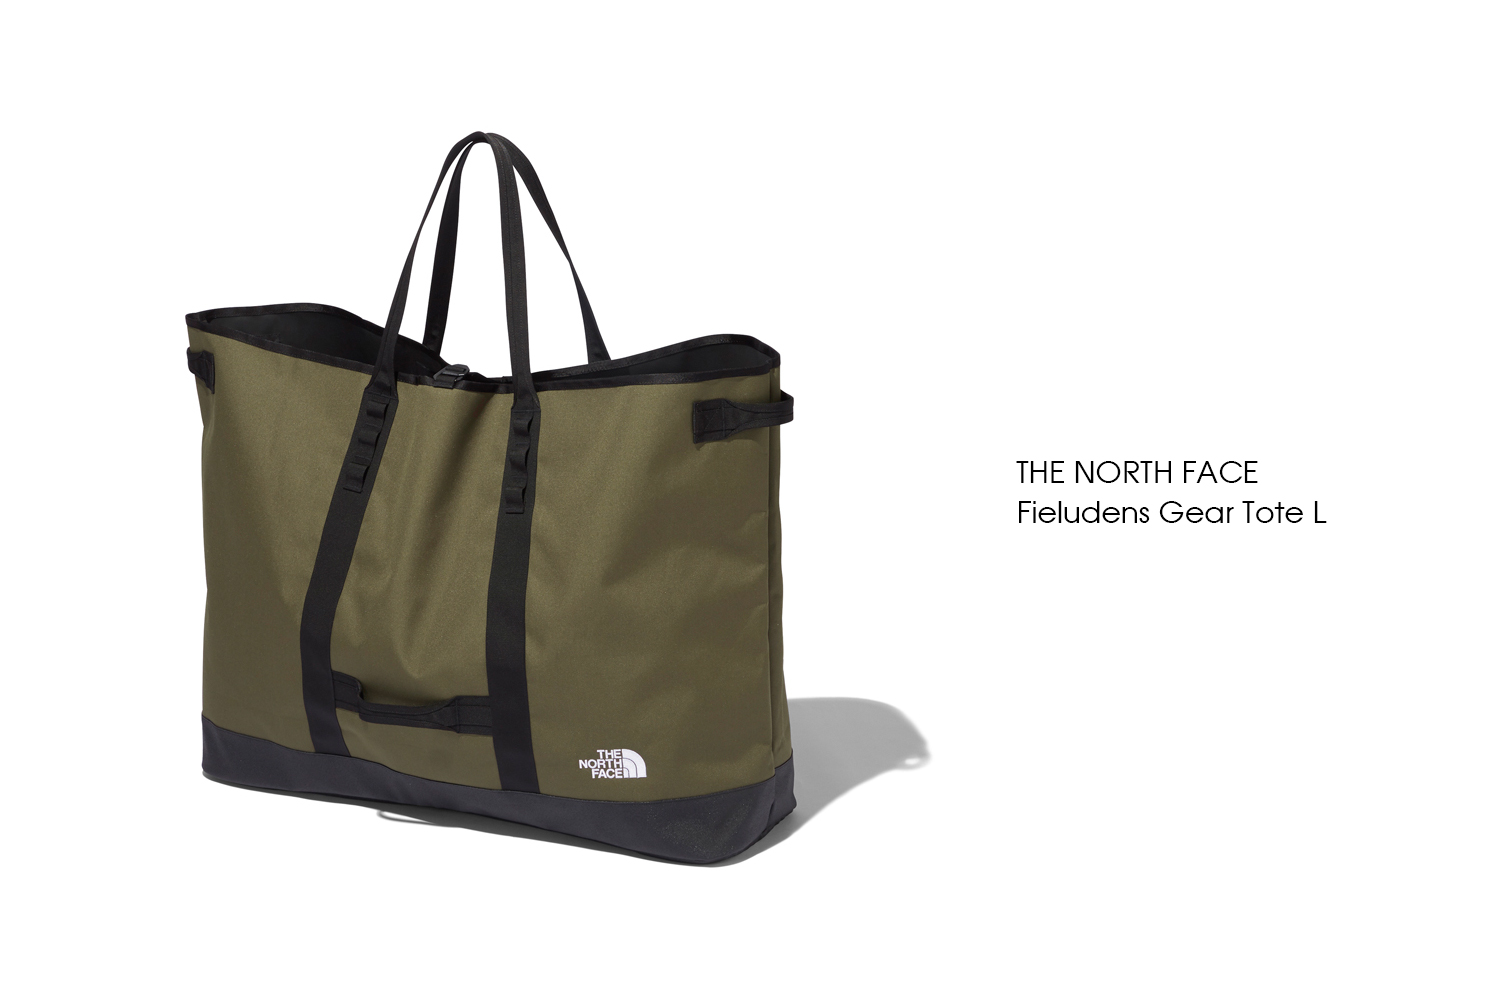 "THE NORTH FACE ""Fieludens Gear Tote L"""